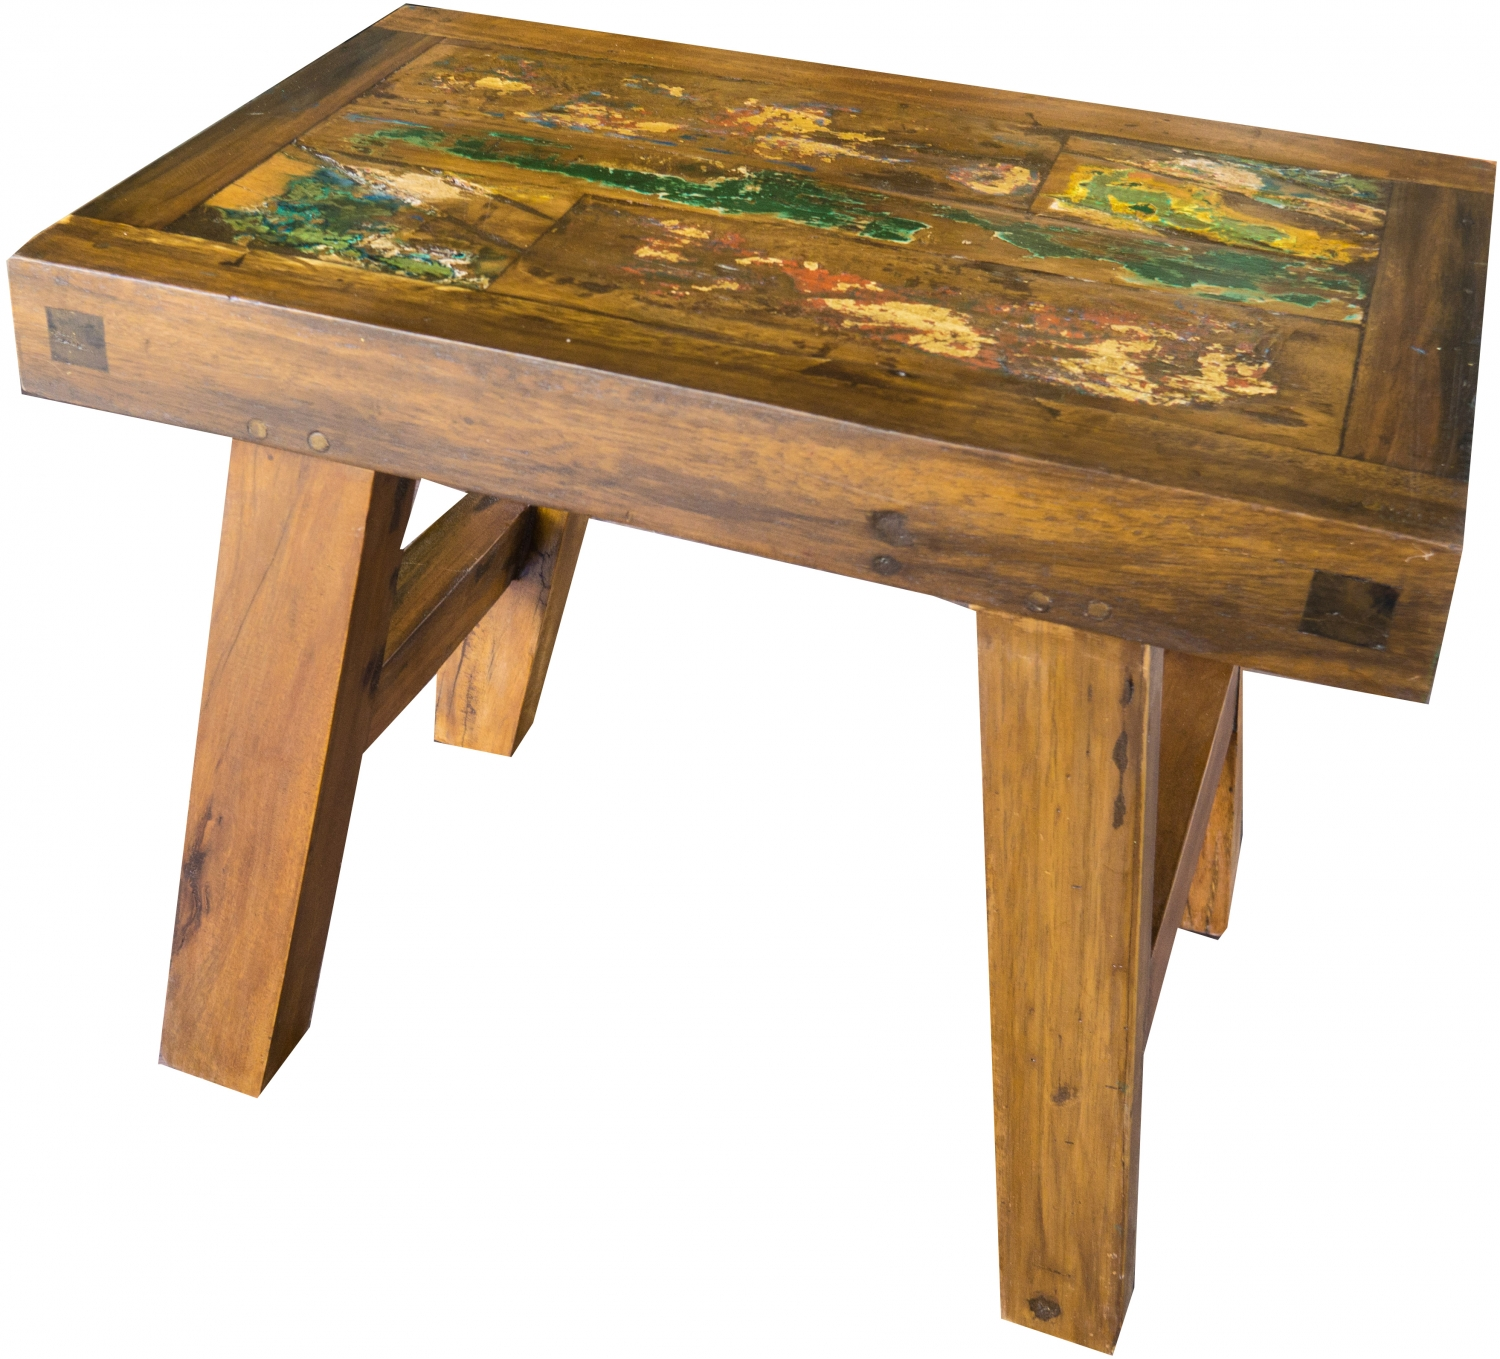 - Small Storage Table, Flower Bench, Coffee Table In Recycled Teak